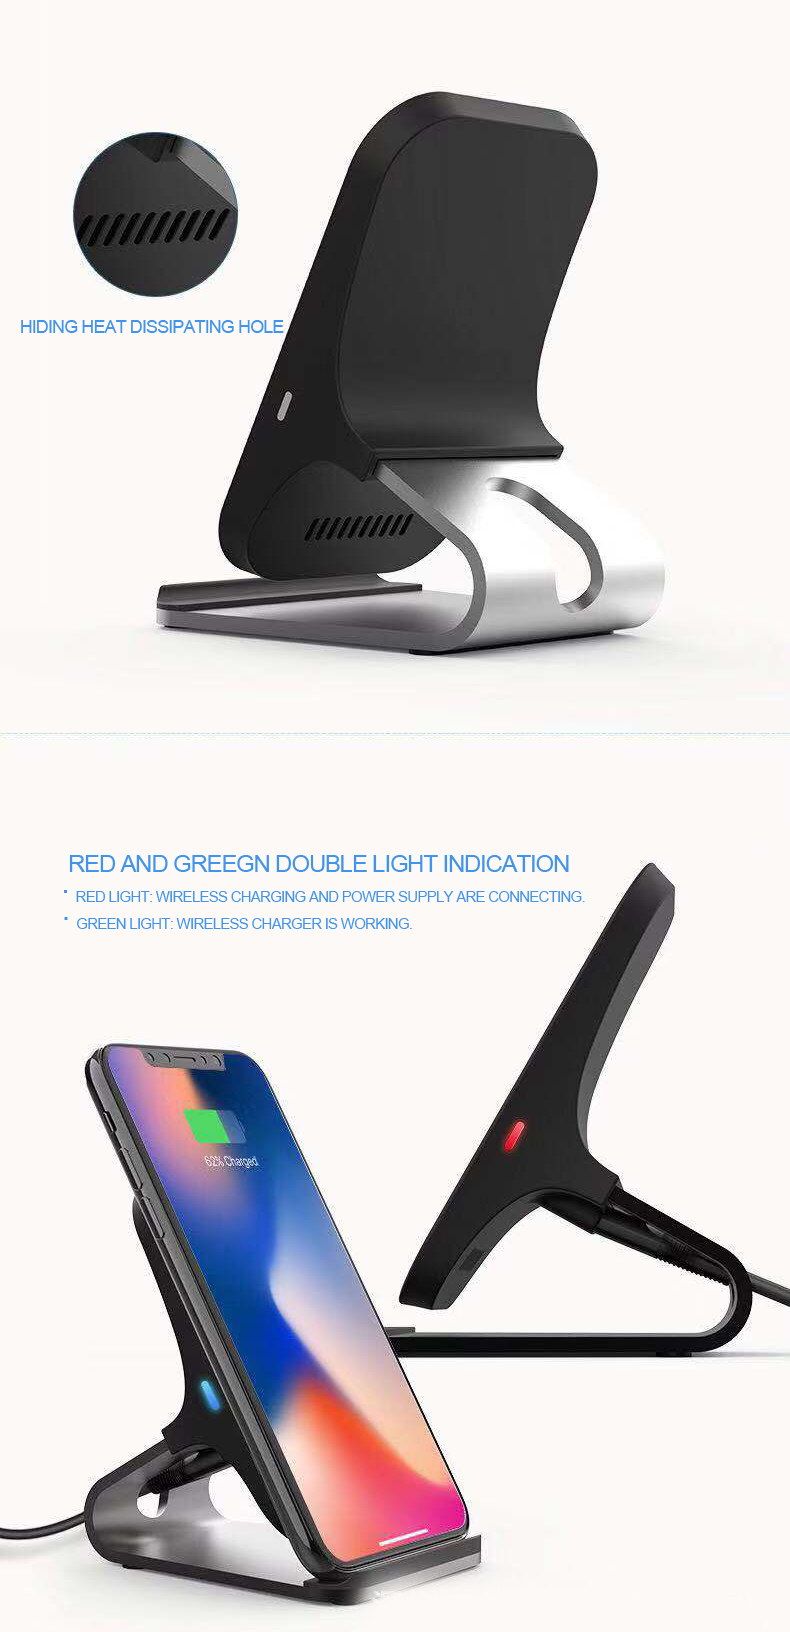 Cellphone Fast Wireless Charger Stand for Samsung Galaxy Note 8 S8 S8 Plus S7 Edge S7 S6